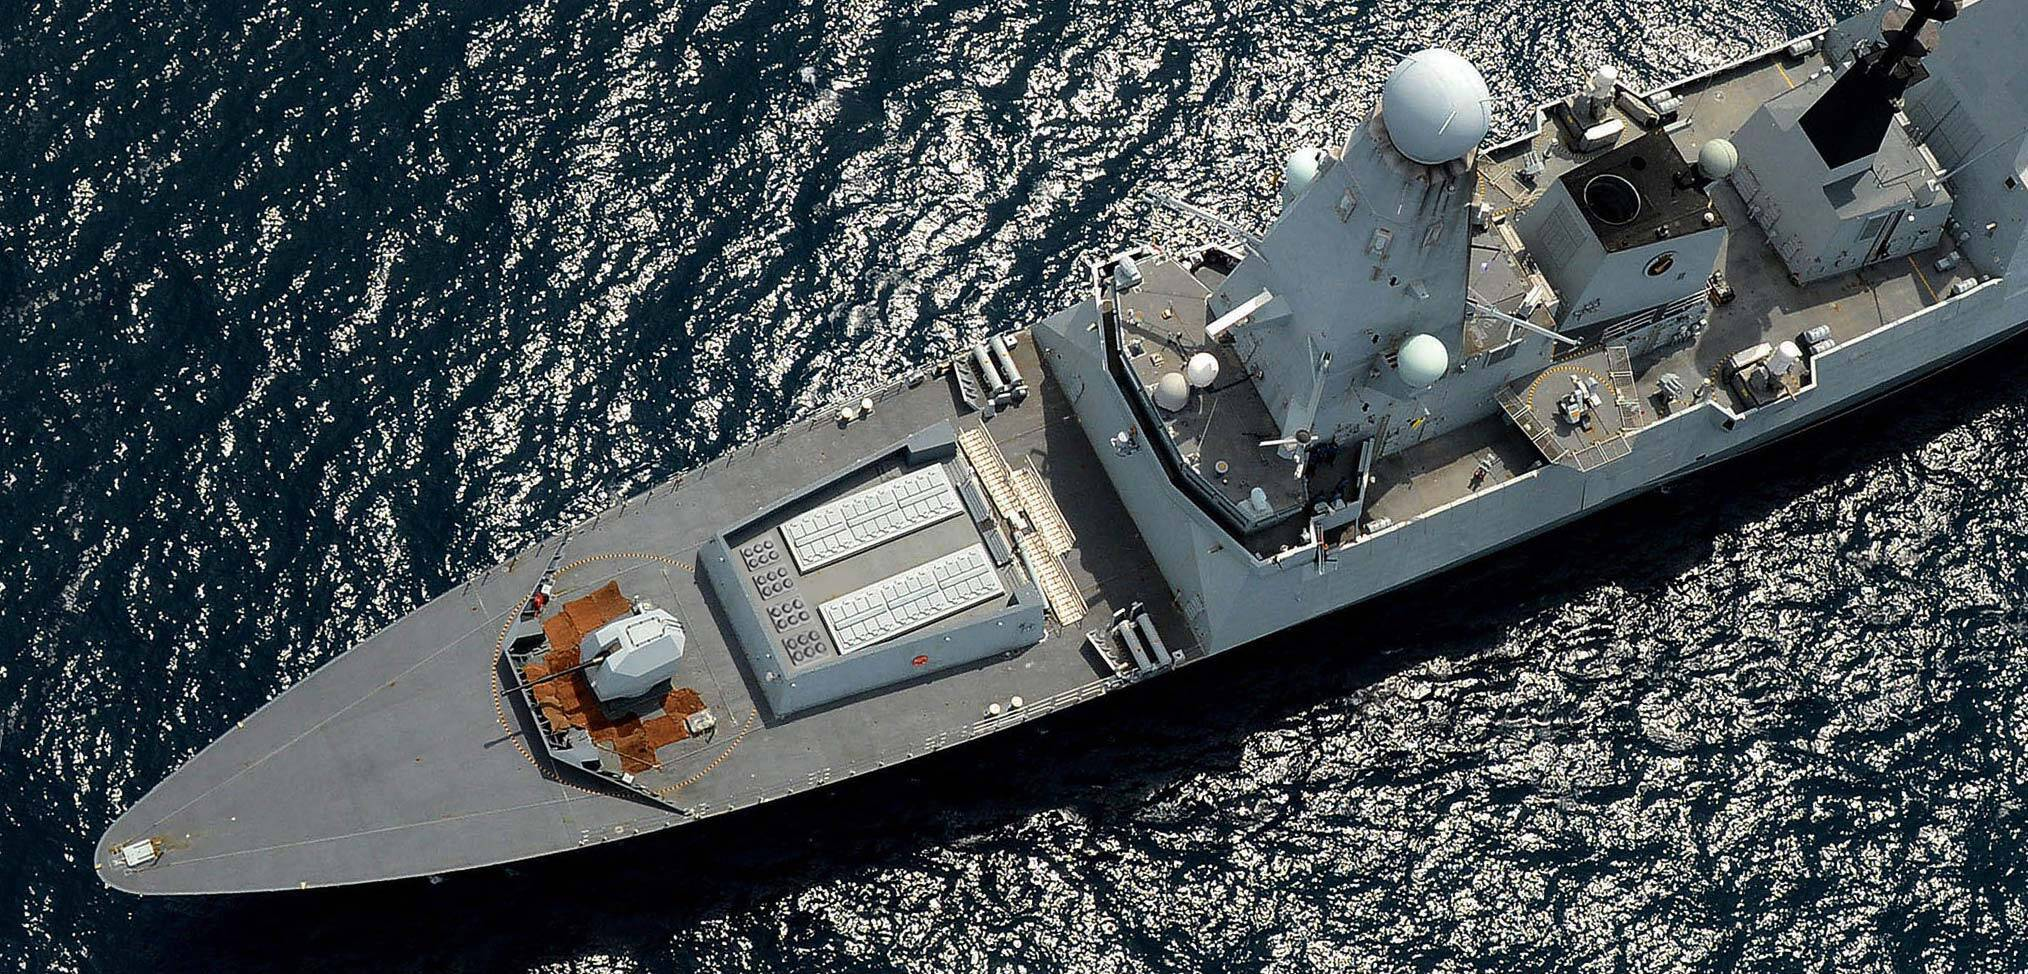 Royal Navy's Type 45 destroyers – reaching their full potential with addition of Sea Ceptor missiles